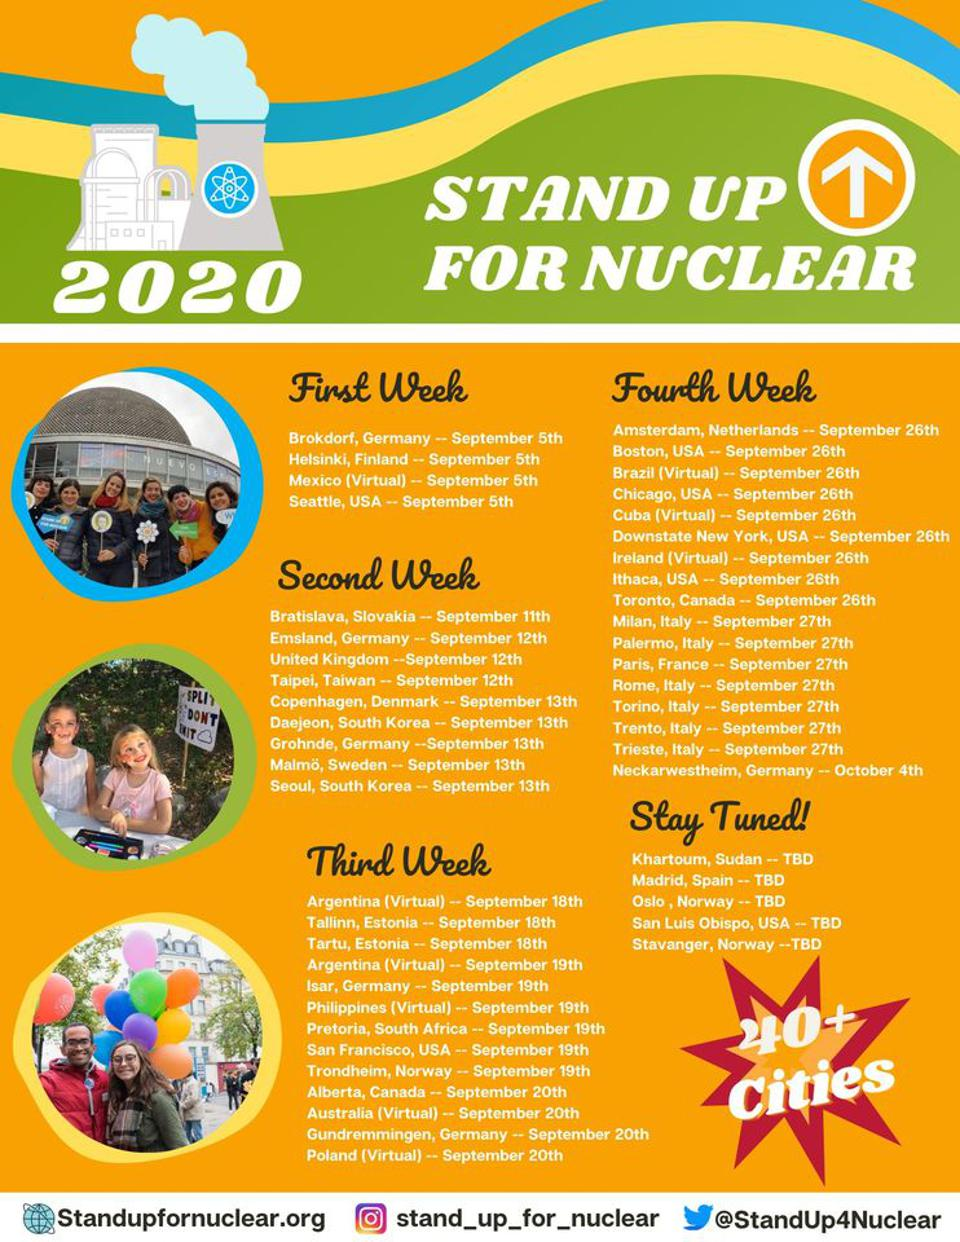 Flyer showing that pro-nuclear activists intend to demonstrate in over 40 cities.